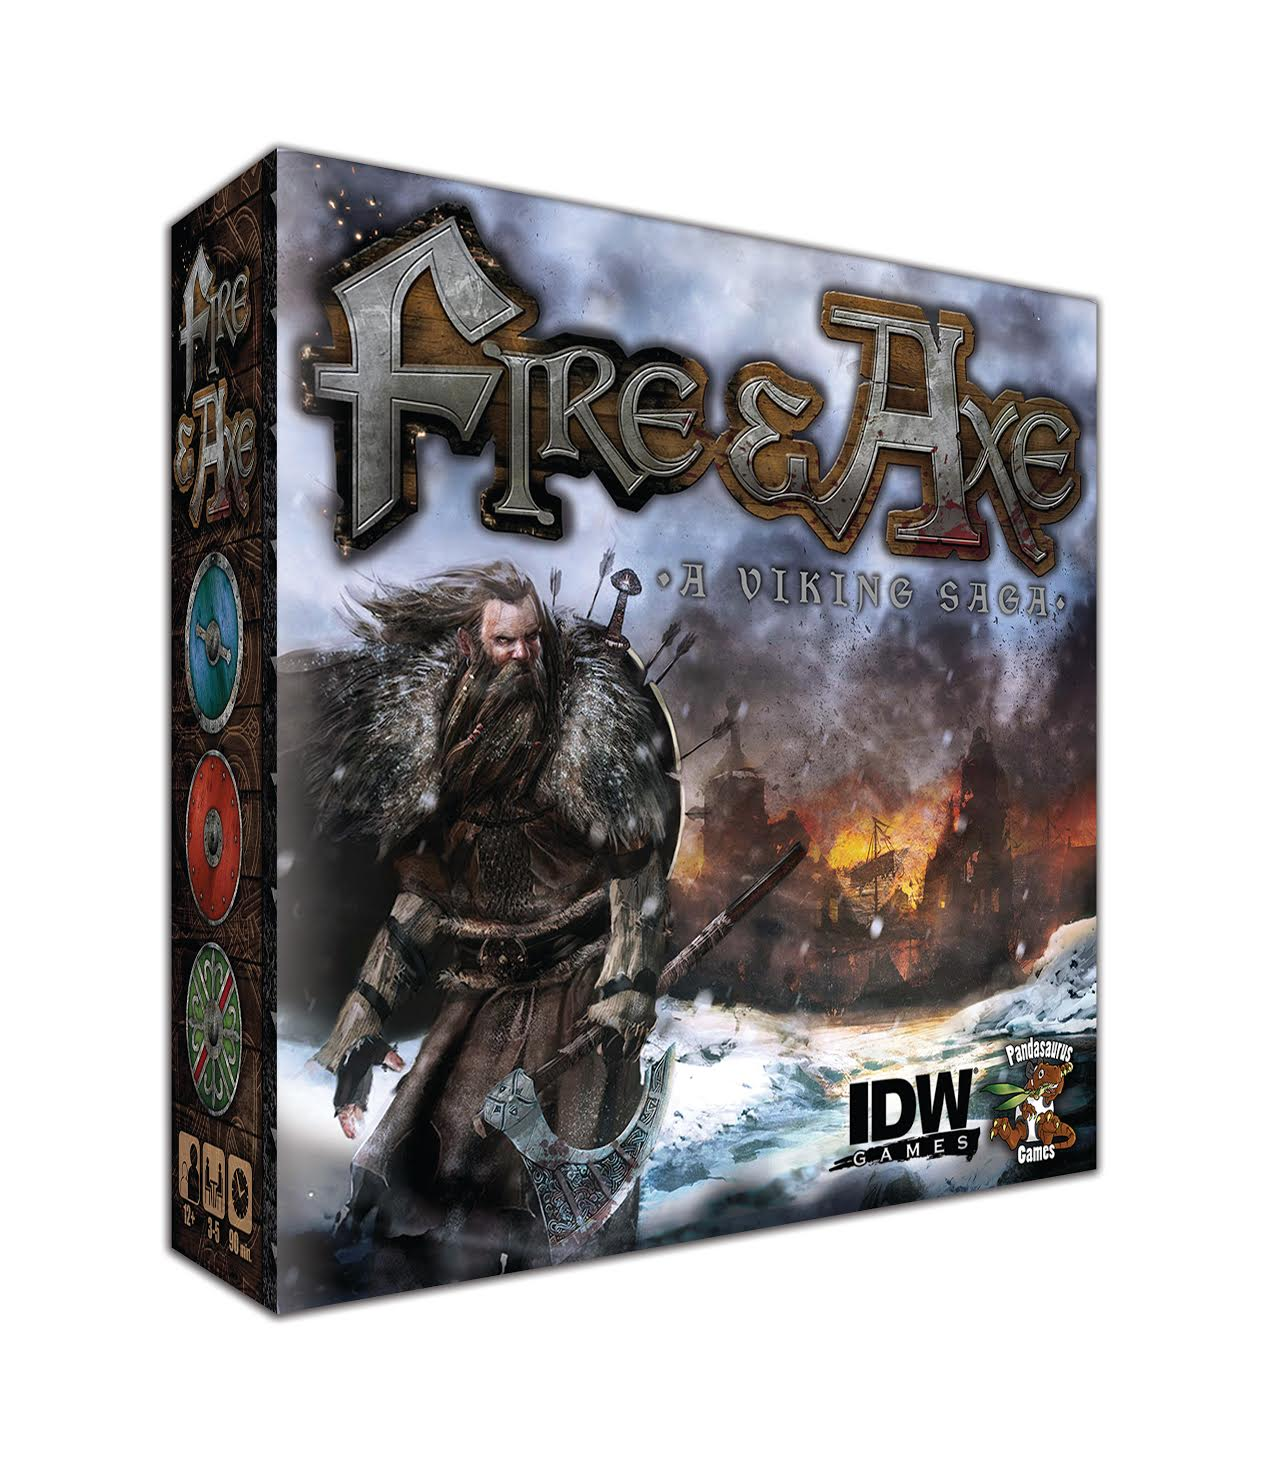 XFIRE AXE A VIKING SAGA INVADES TABLETOPS WITH BREATHTAKING NEW ART BELOVED MECHANICS AND EXCLUSIVE PRE ORDER BONUS MINIATURES